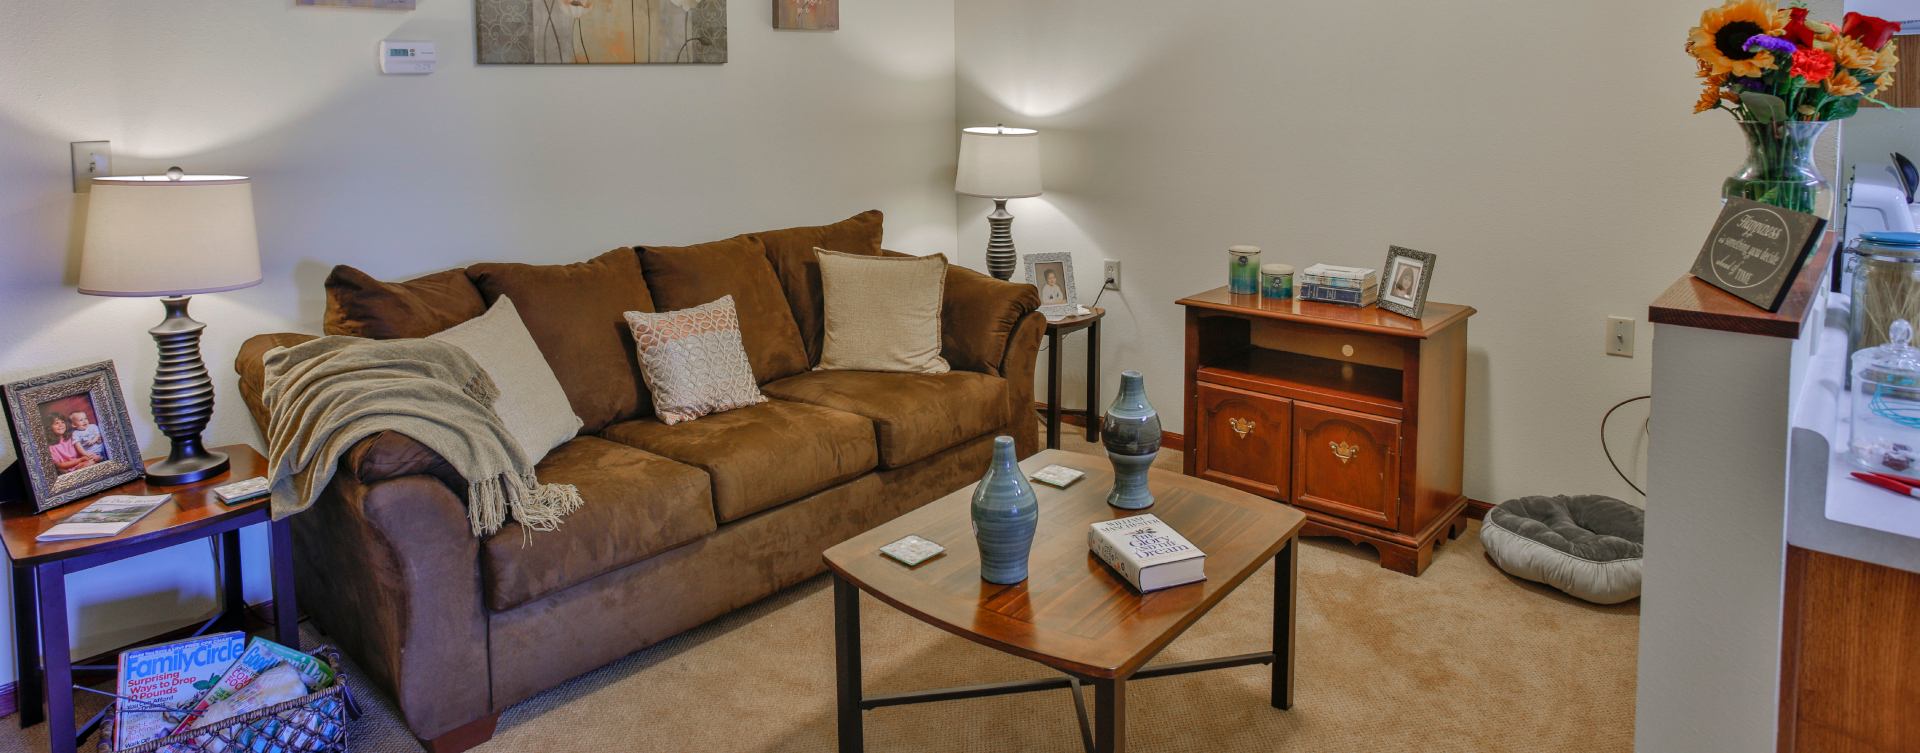 Get a new lease on life with a cozy apartment at Bickford of Springfield